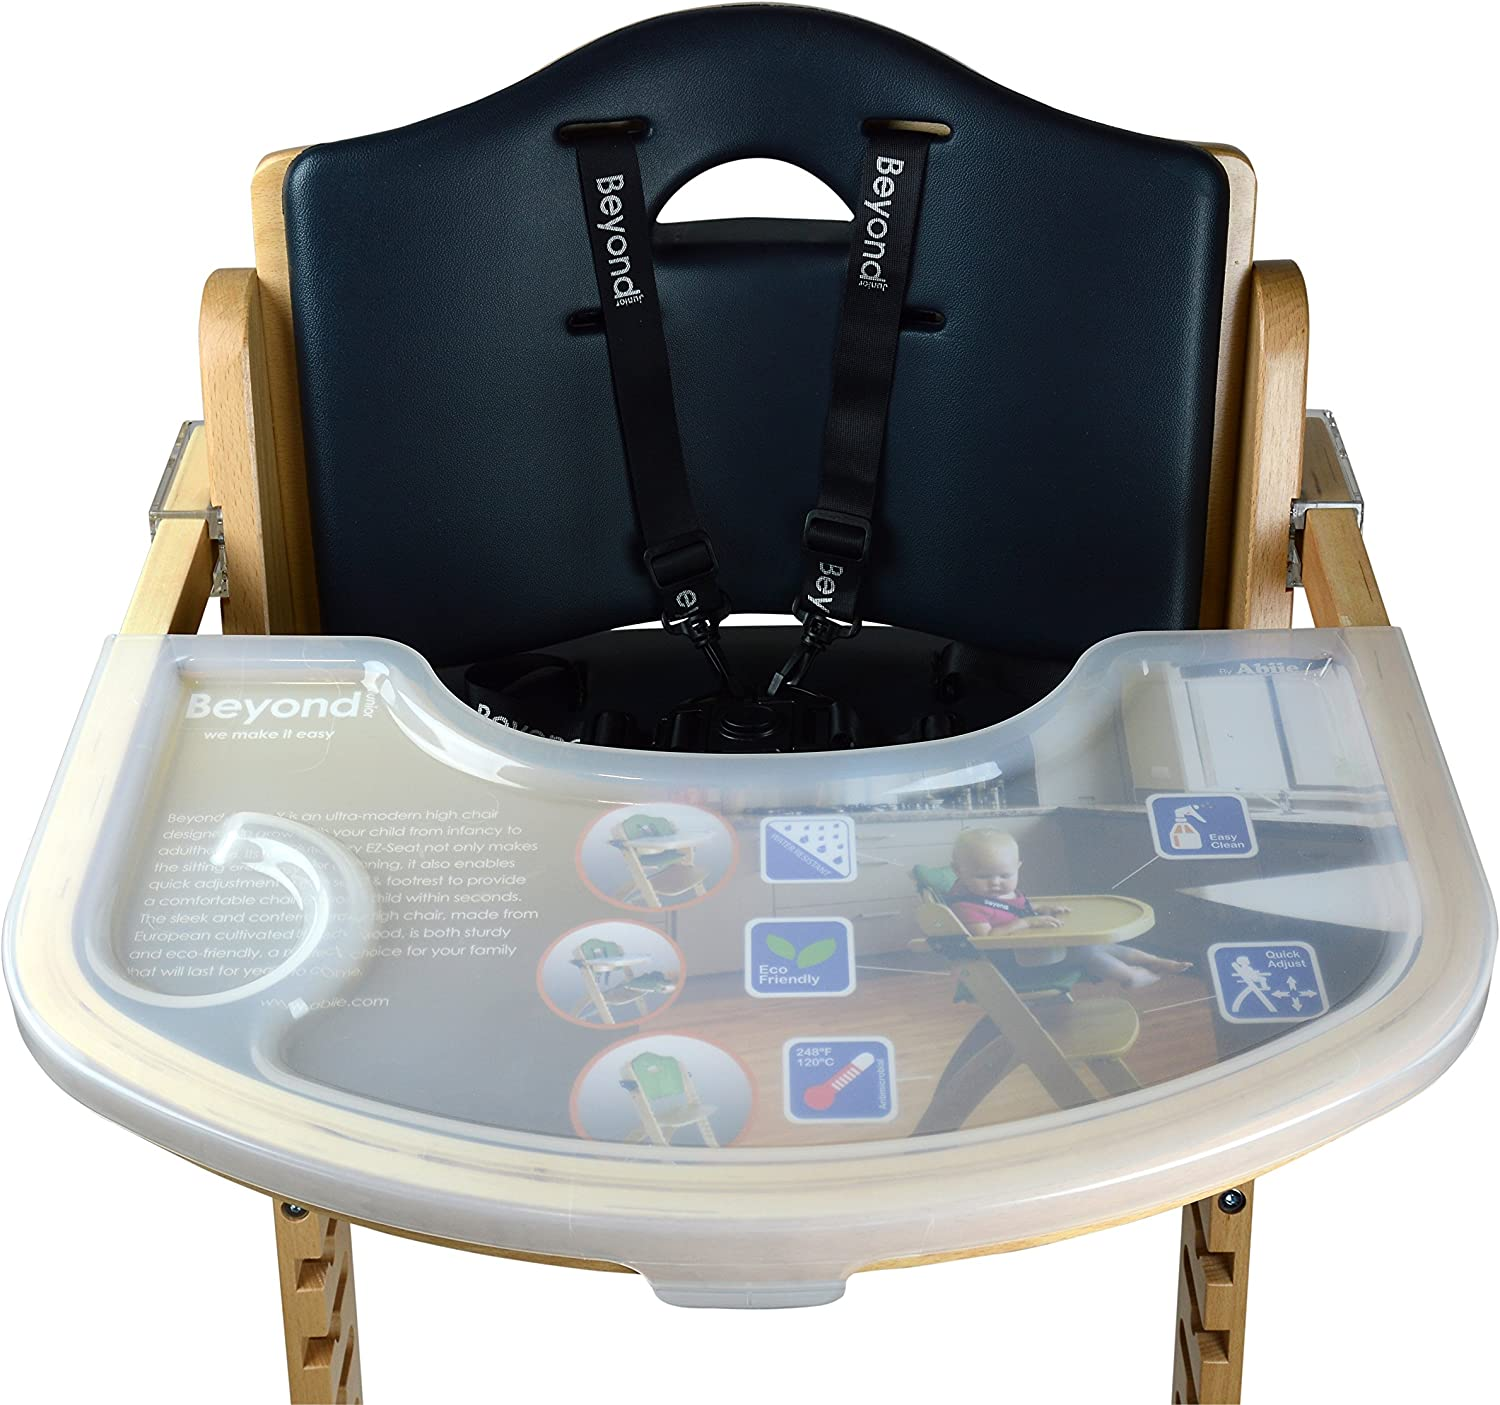 6 Months /& up Abiie Beyond Wooden High Chair with Tray.The Perfect Seating Highchair Solution for Your Child As Toddlers or a Dining Chair Natural - Black Cushion